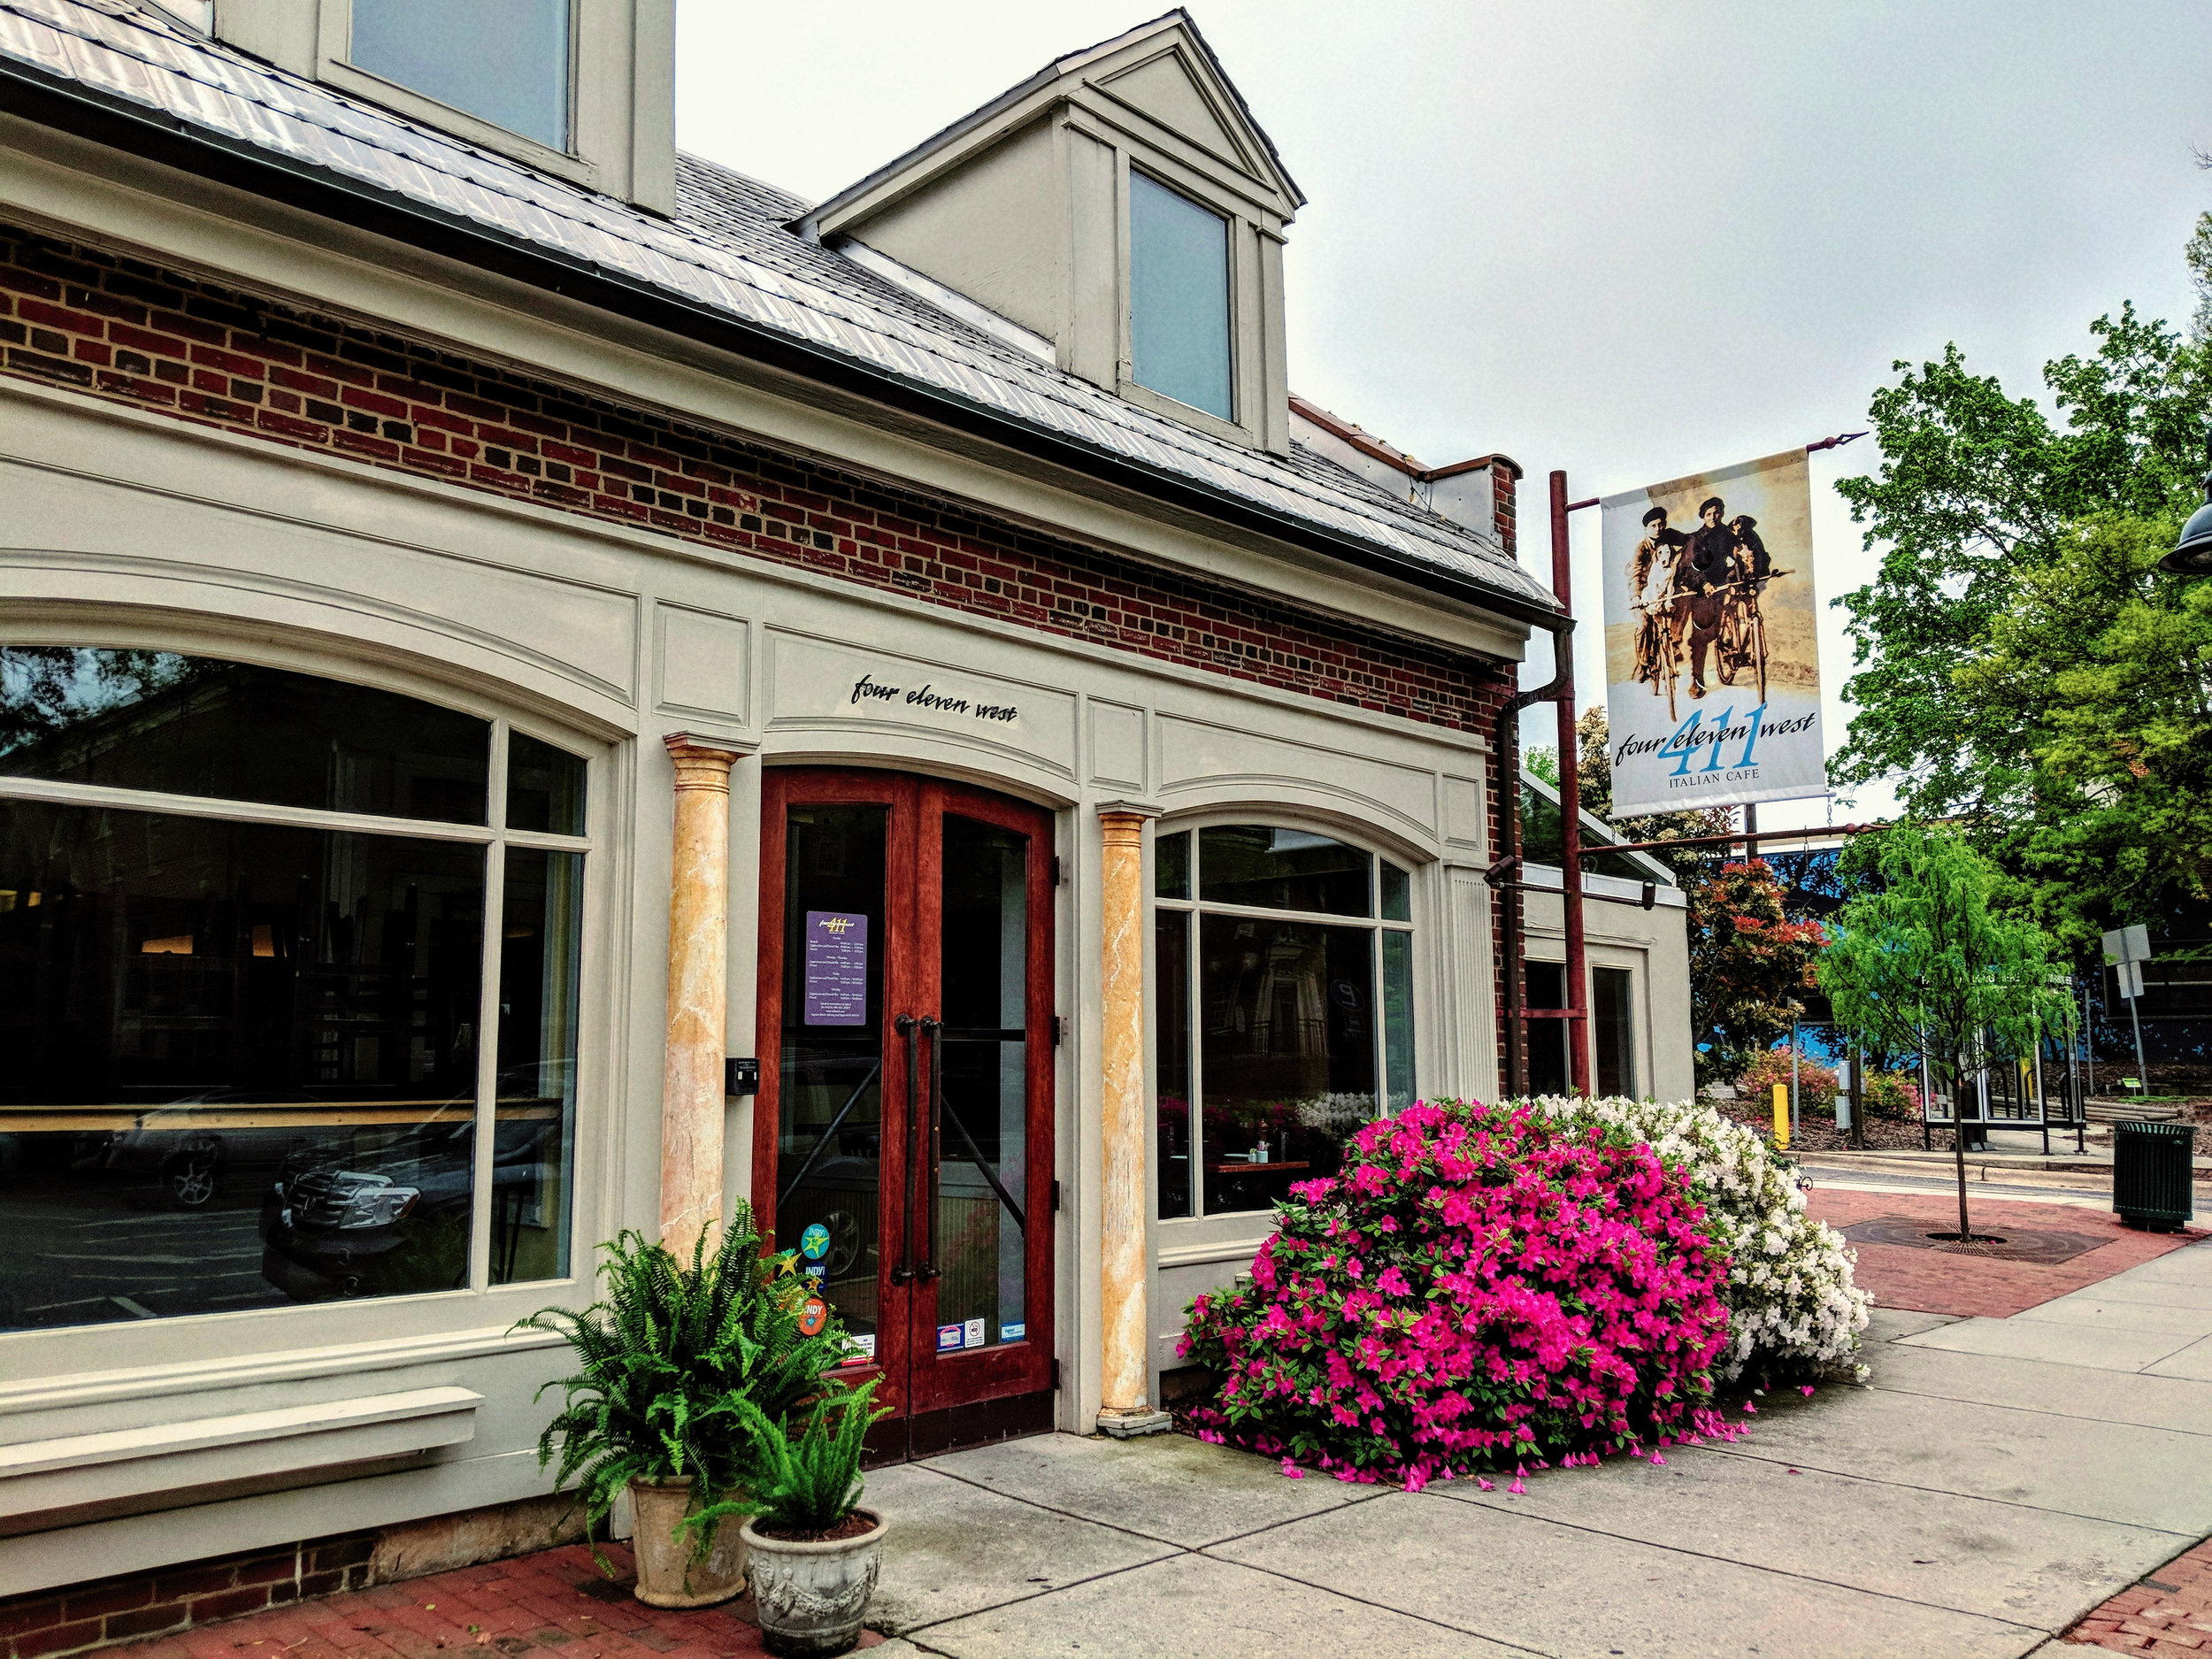 - Voted 2018 Best Italian Restaurant in Chapel Hill by Chapel Hill Magazine